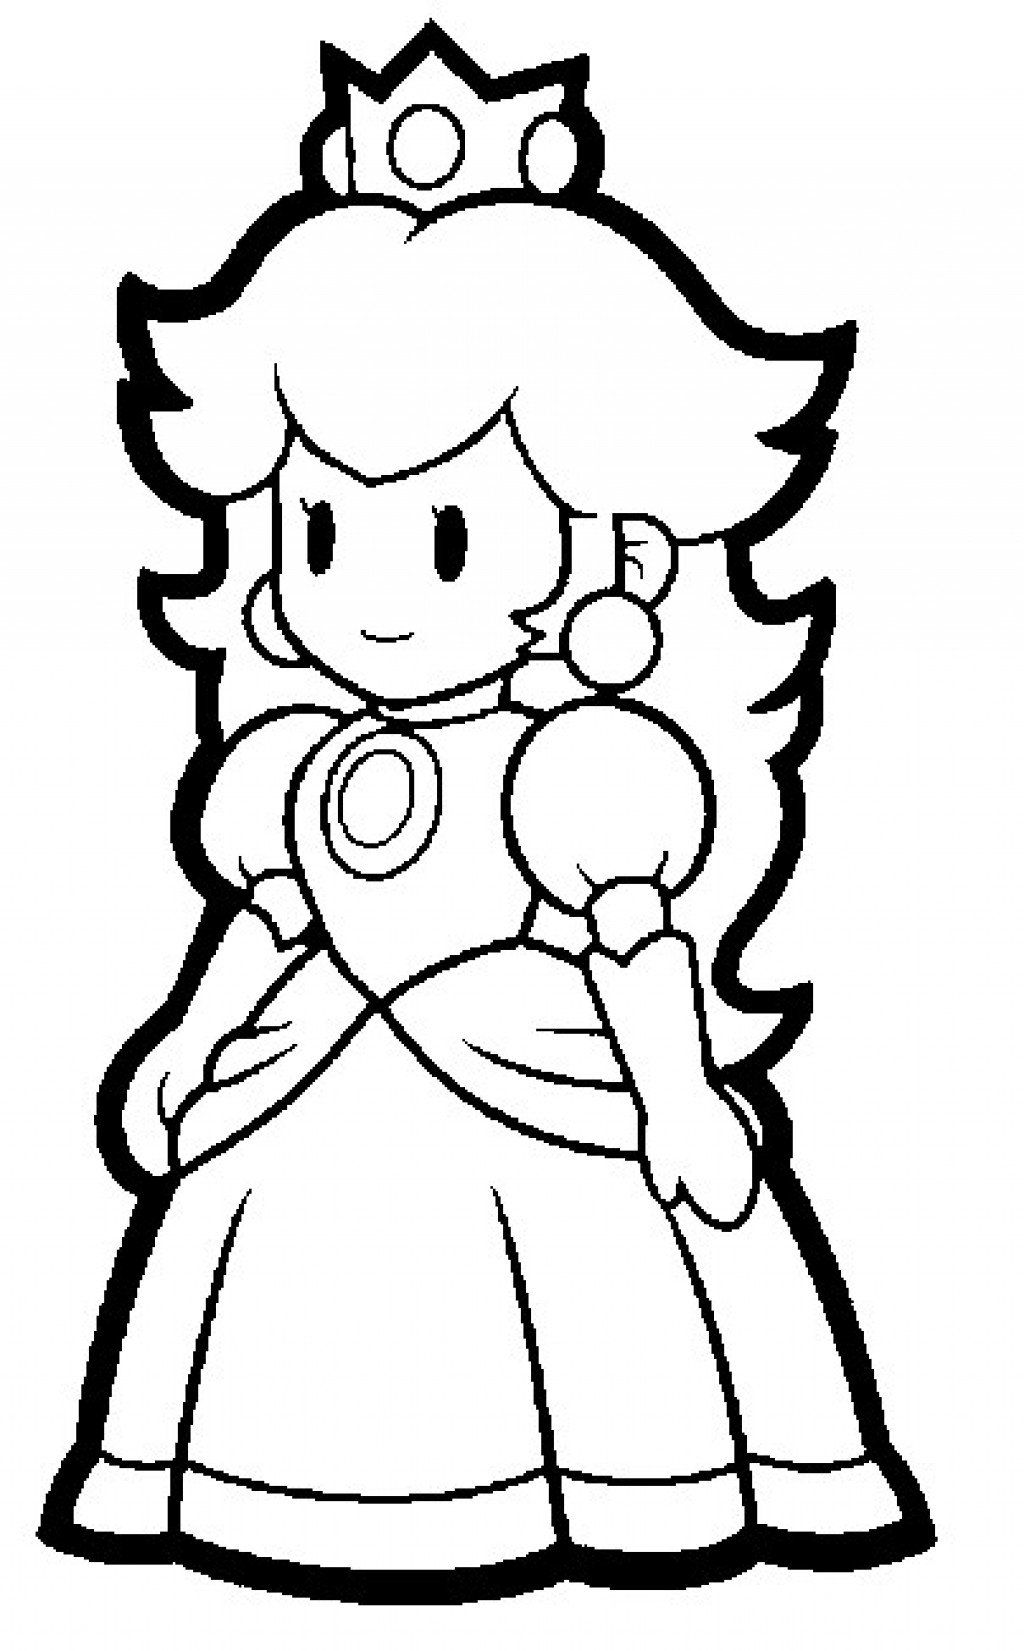 Paper Mario Coloring Pages To Print Concept